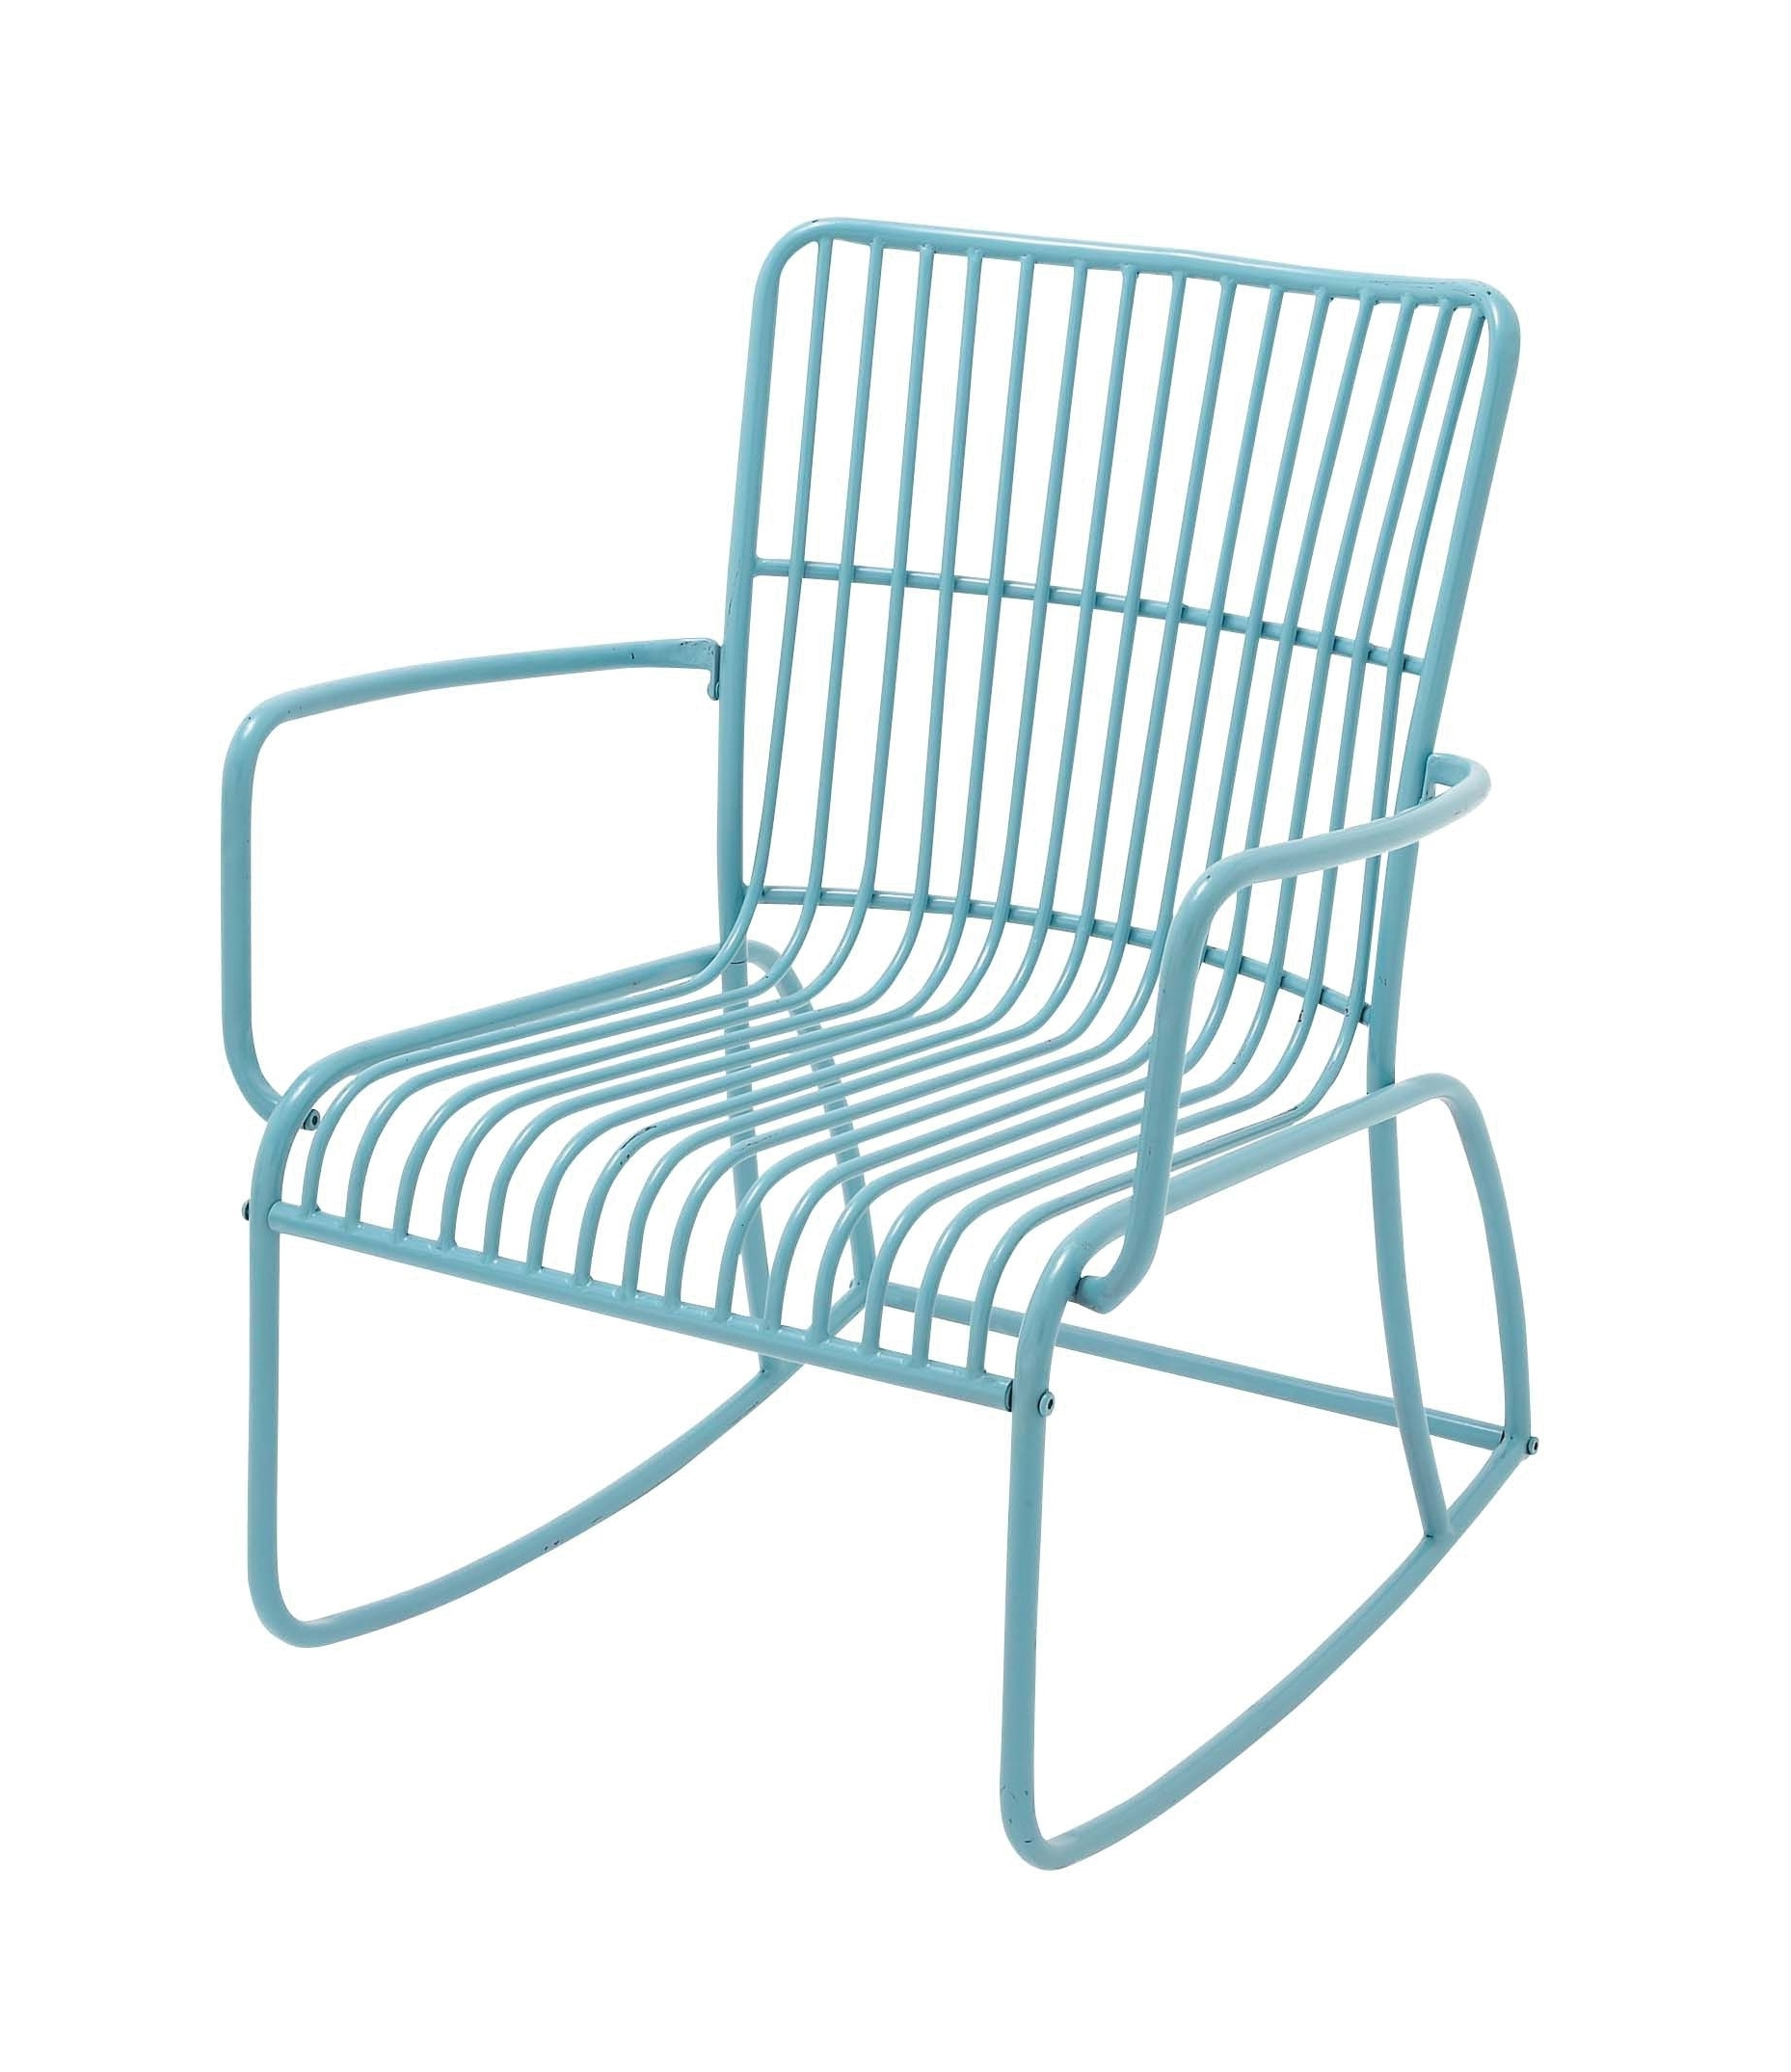 Metal Outdoor Rocking Chair For Fashionable Vintage Metal Rocking Patio Chairs (View 6 of 15)